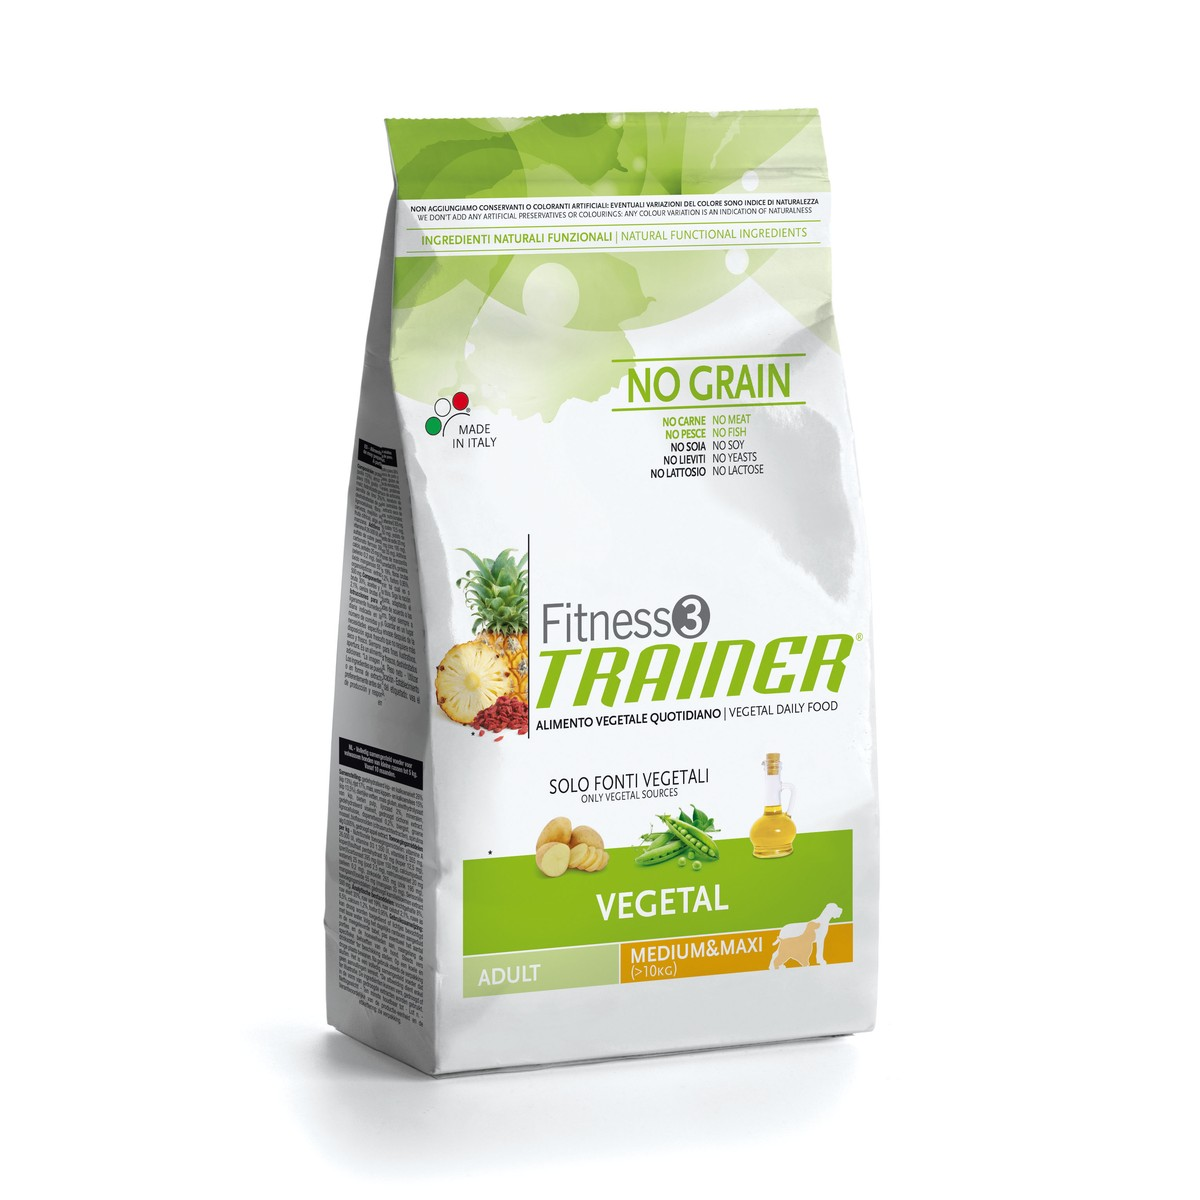 Trainer fitness 3 vegetal mm 3kg  3kg